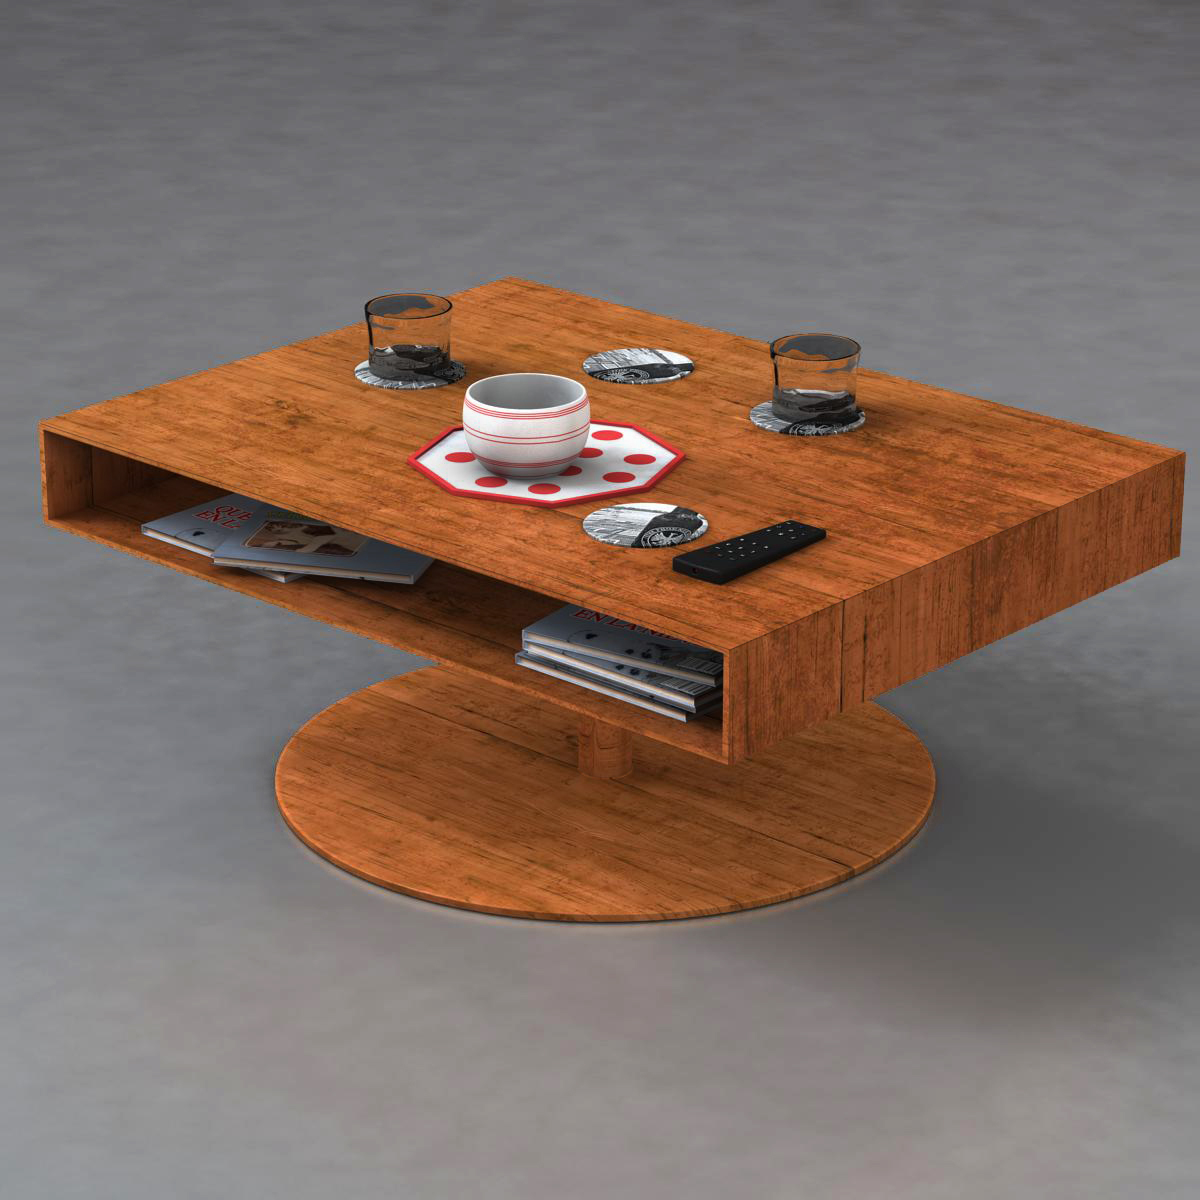 Room table 3d model 3ds max fbx c4d ma mb obj 162723